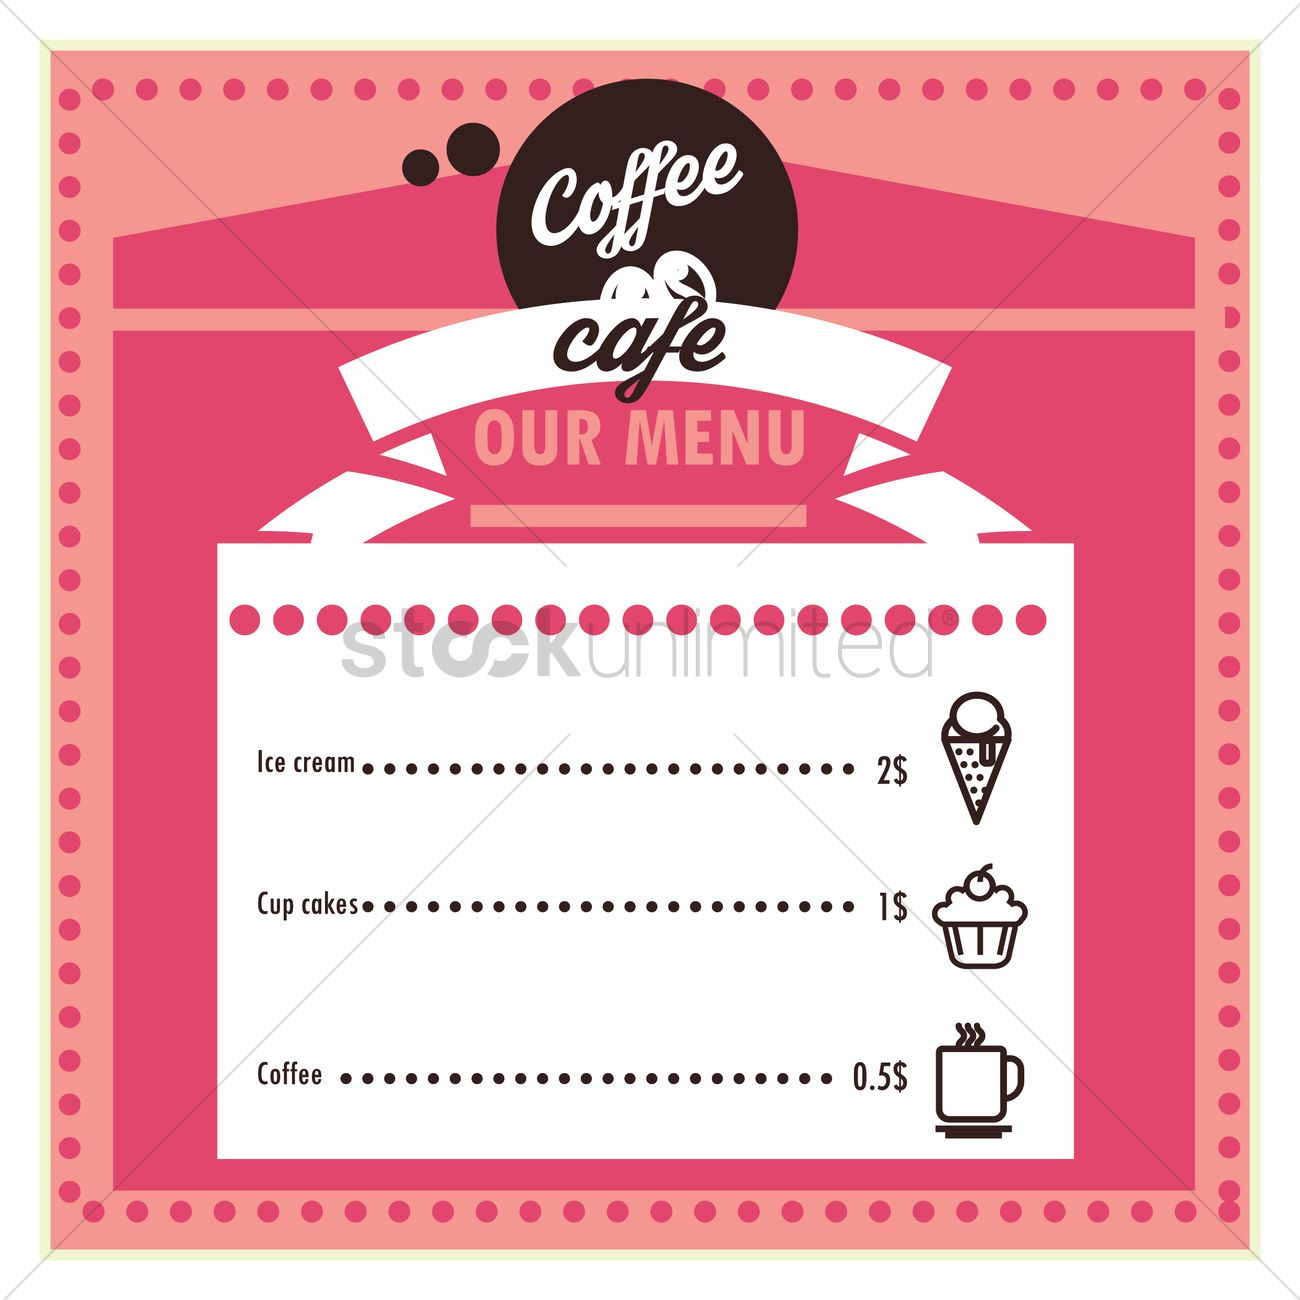 coffee cafe menu card design vector image - 1798358 | stockunlimited